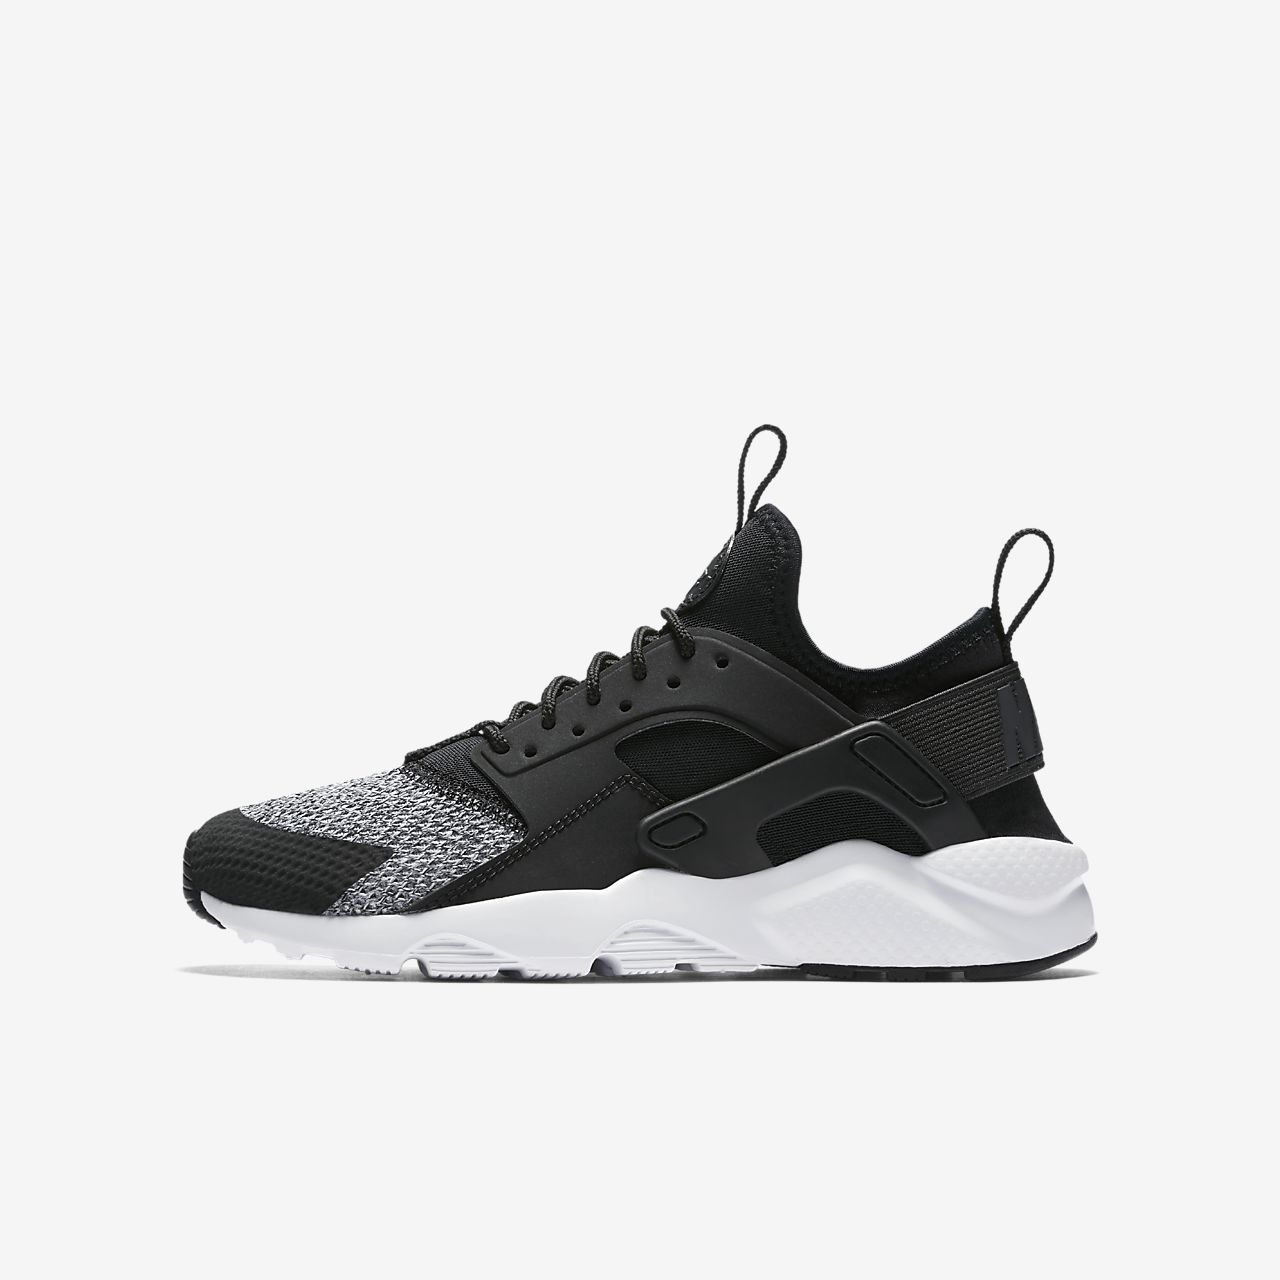 nike huarache air run ultra. Black Bedroom Furniture Sets. Home Design Ideas